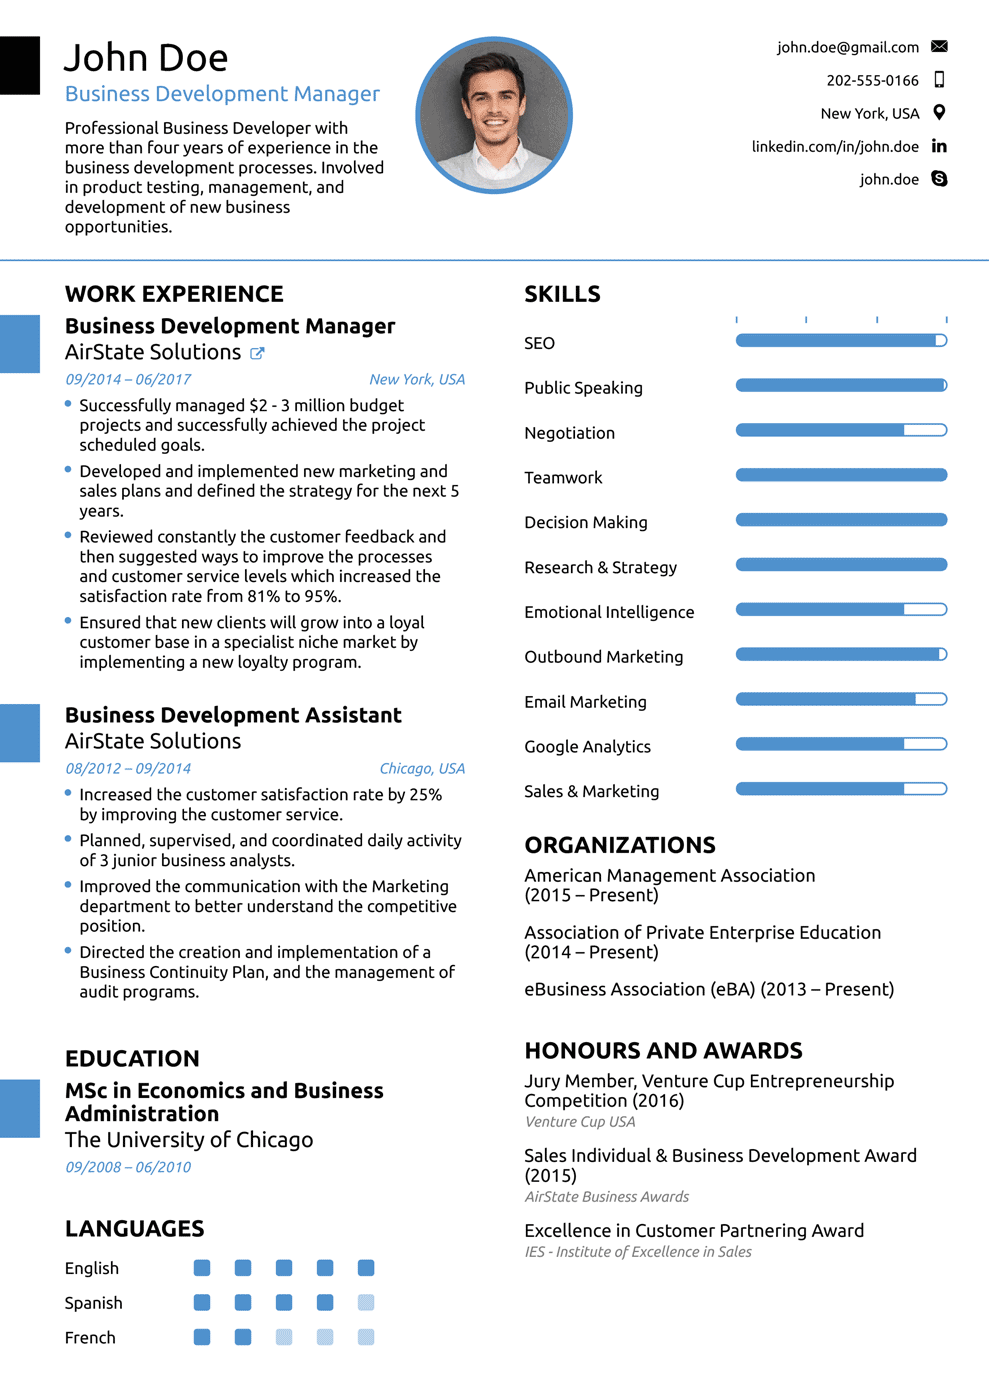 professional resume template - Professional Business Resume Template